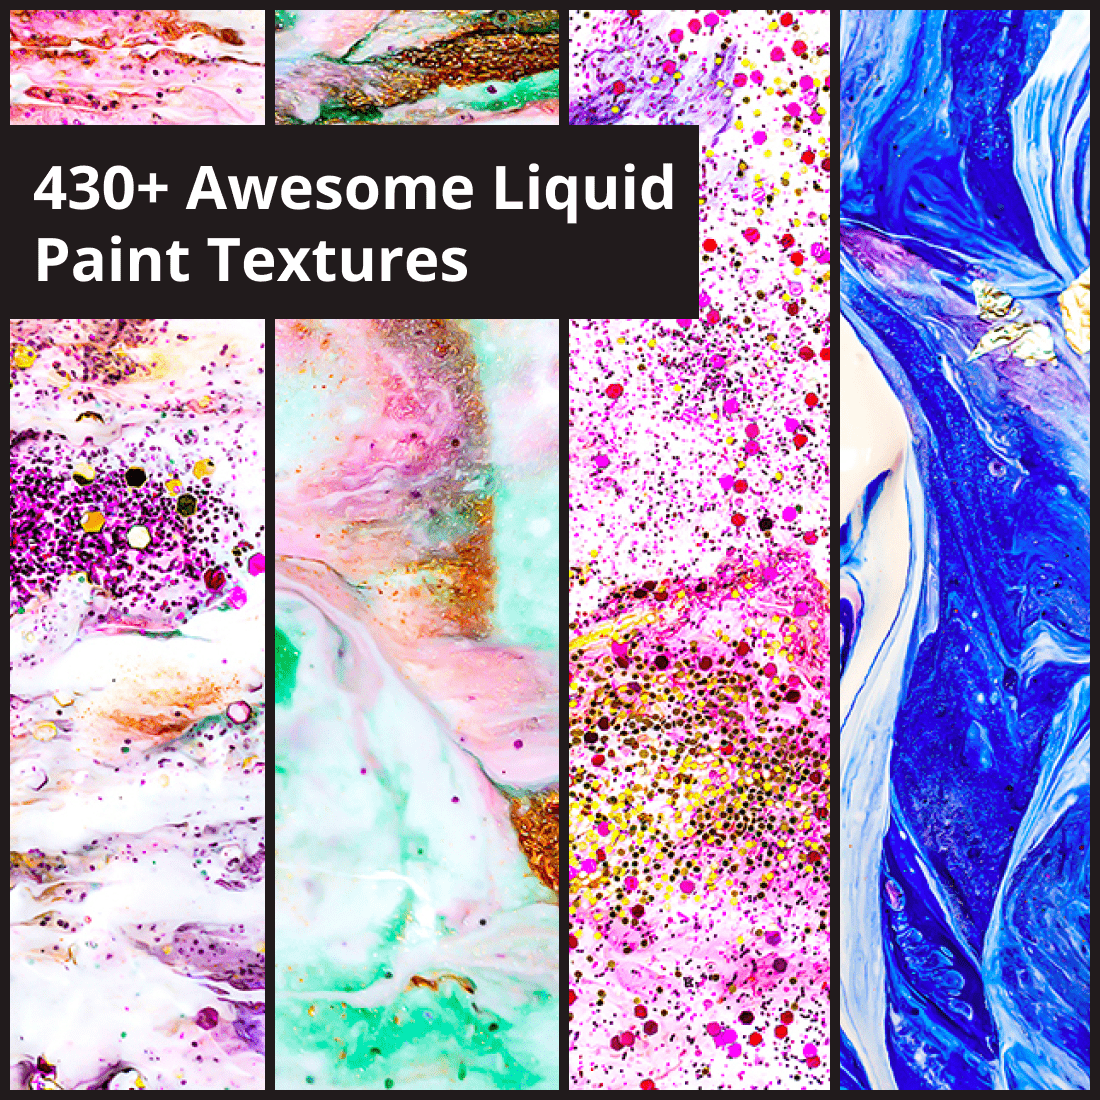 430+ Awesome Liquid Paint Textures